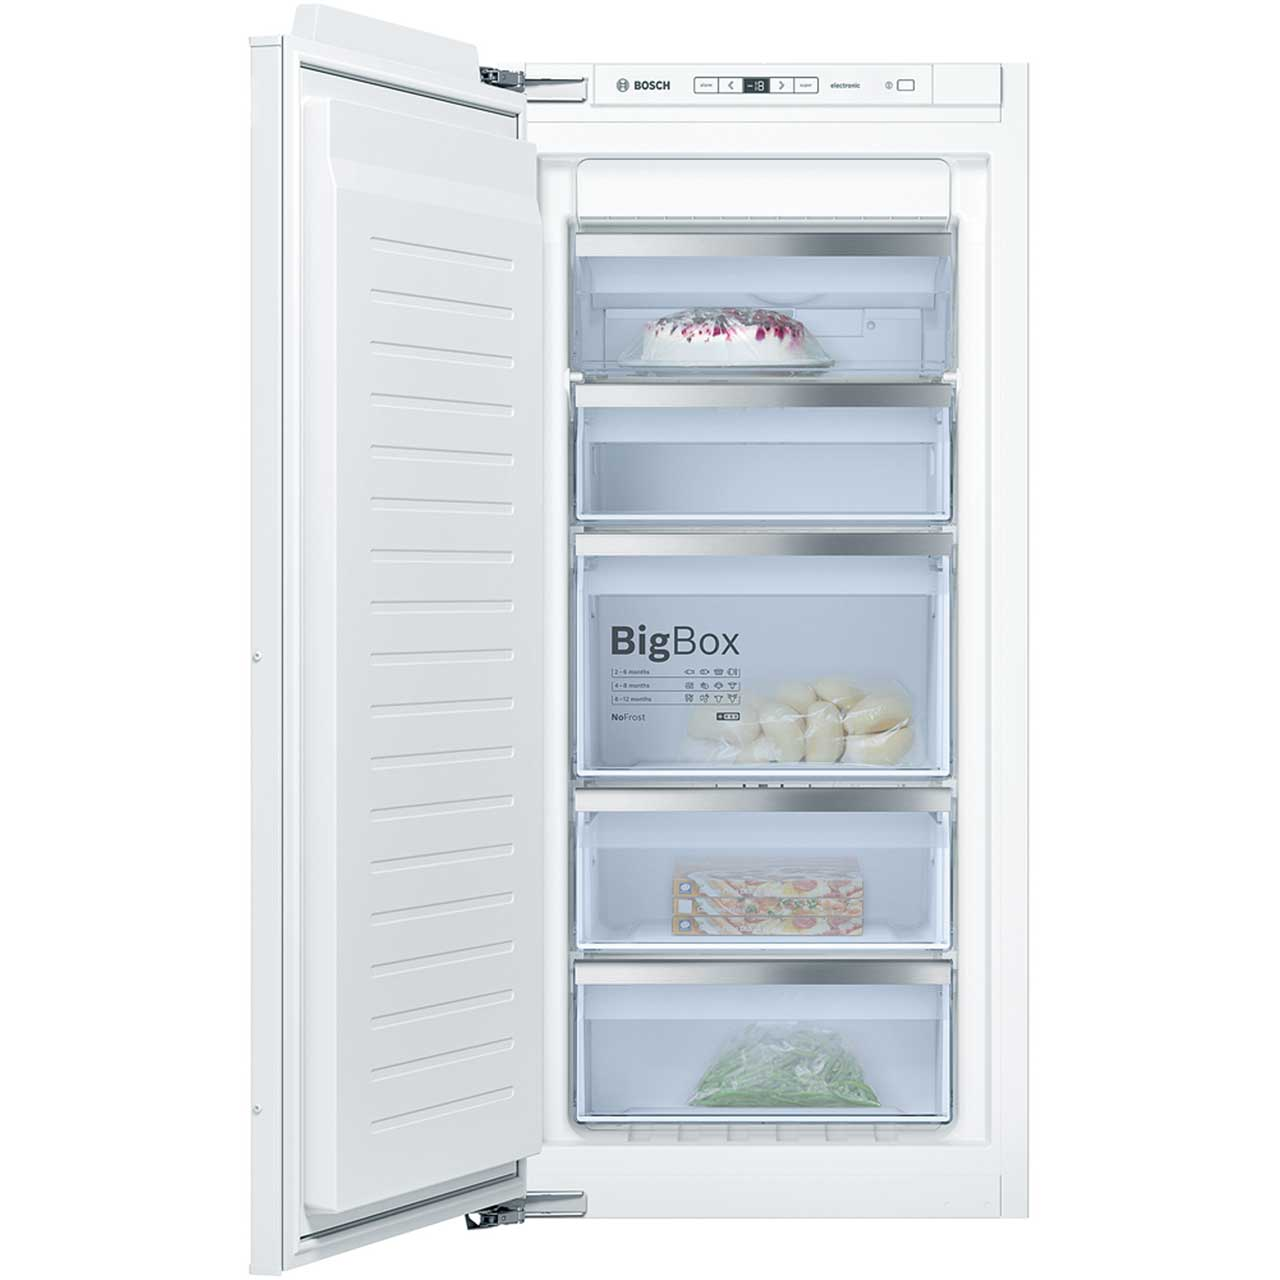 Bosch GIN41AE30G Integrated Freezer Frost Free in White